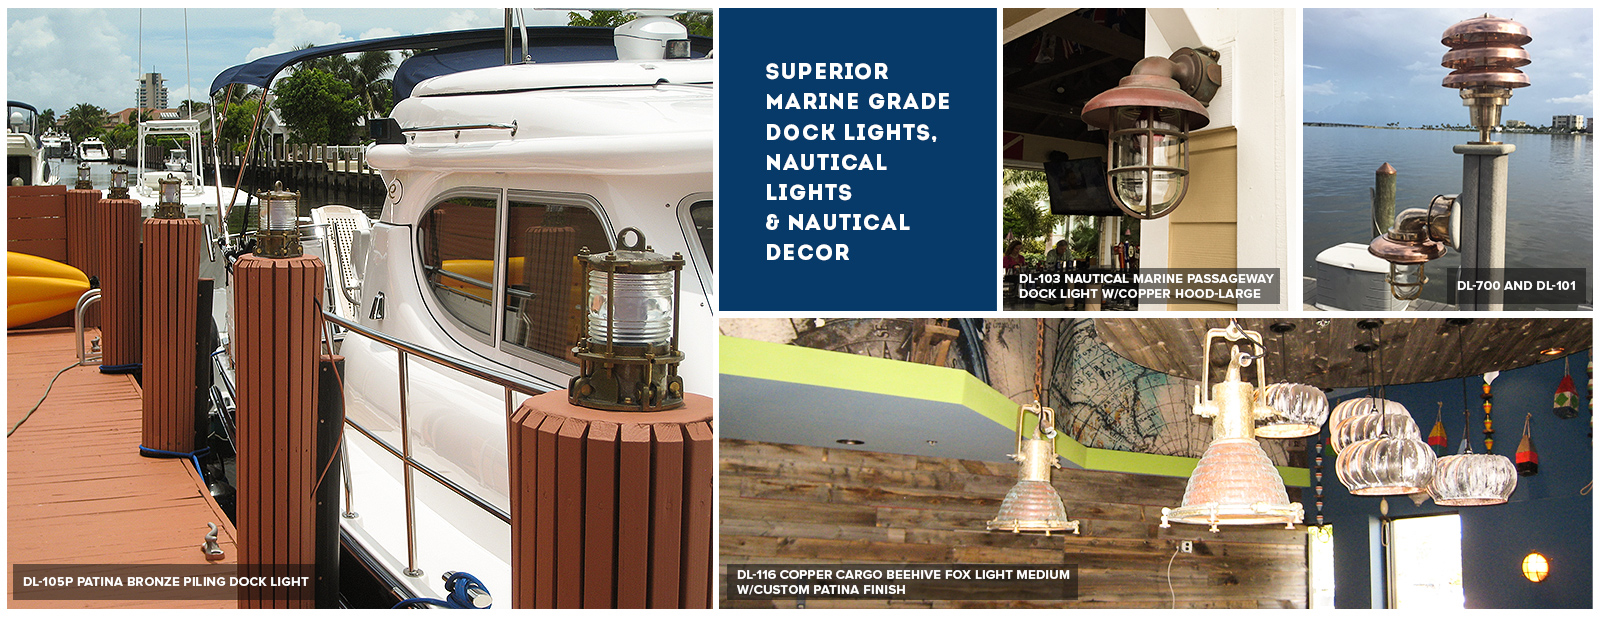 heavy duty nautical dock lighting, brass and aluminum dock lights, Reel Combo